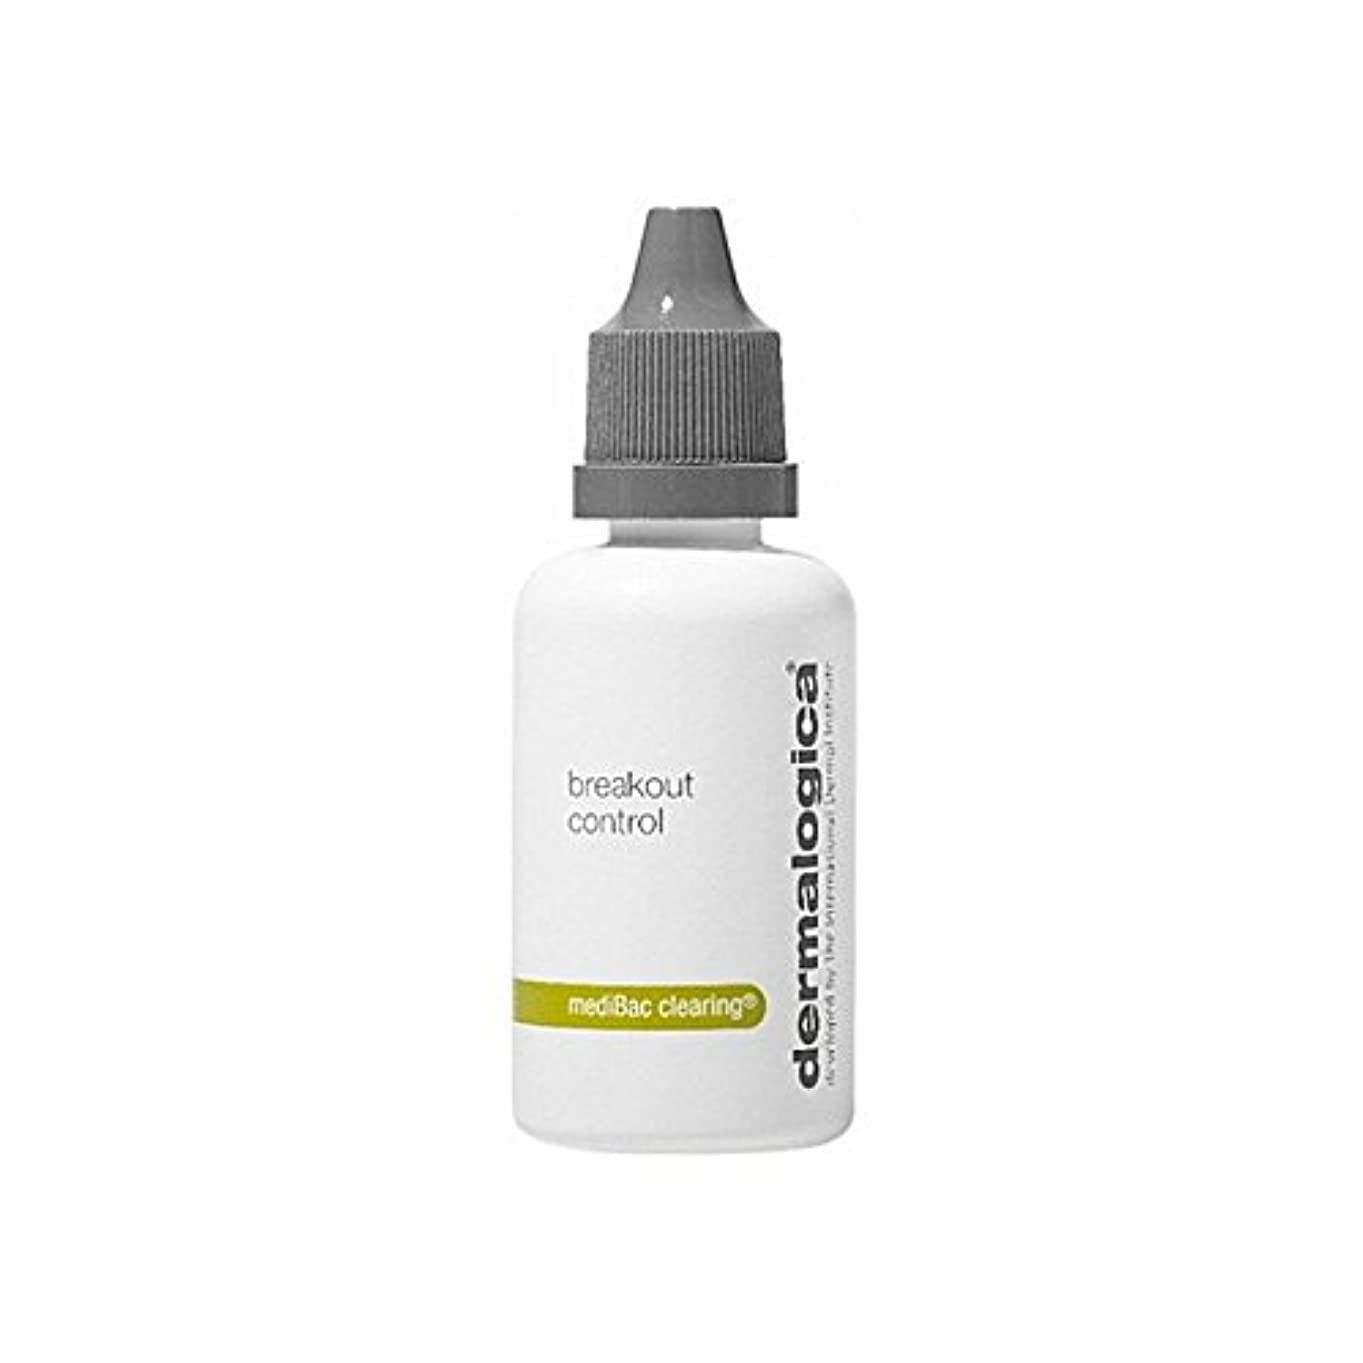 Dermalogica Breakout Control 30ml - ダーマロジカブレイクアウト制御30ミリリットル [並行輸入品]